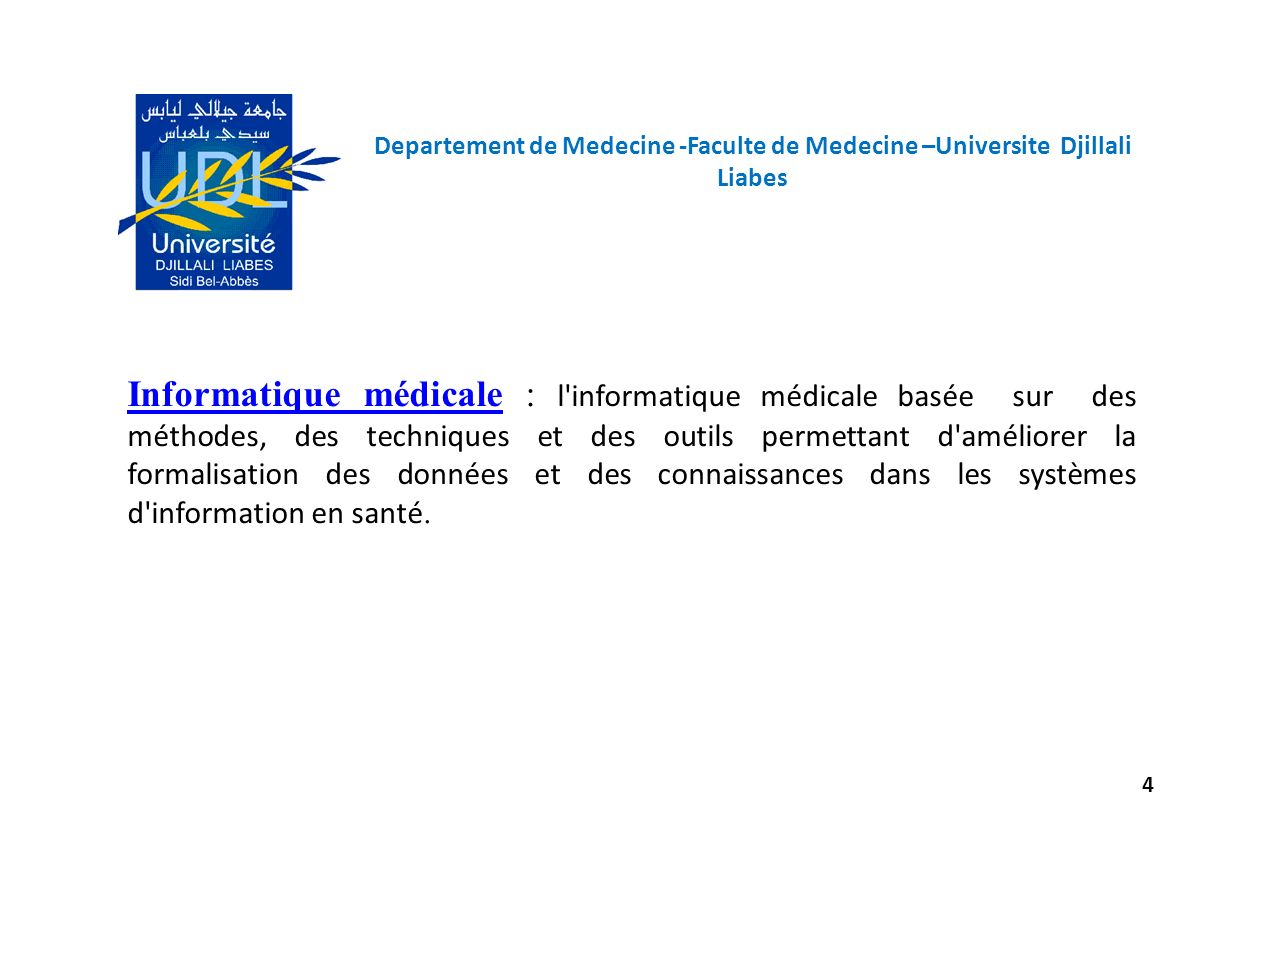 Programme en R 25 Departement de Medecine -Faculte de Medecine –Universite Djillali Liabes > t=scan() 1: 0.80 2: Read 1 item > if(t>=0.70 && t<=1.10){ print( glecemie normale ) }else { if (t <0.70) print( hypo ) else print( hyper ) } [1] glecemie normale